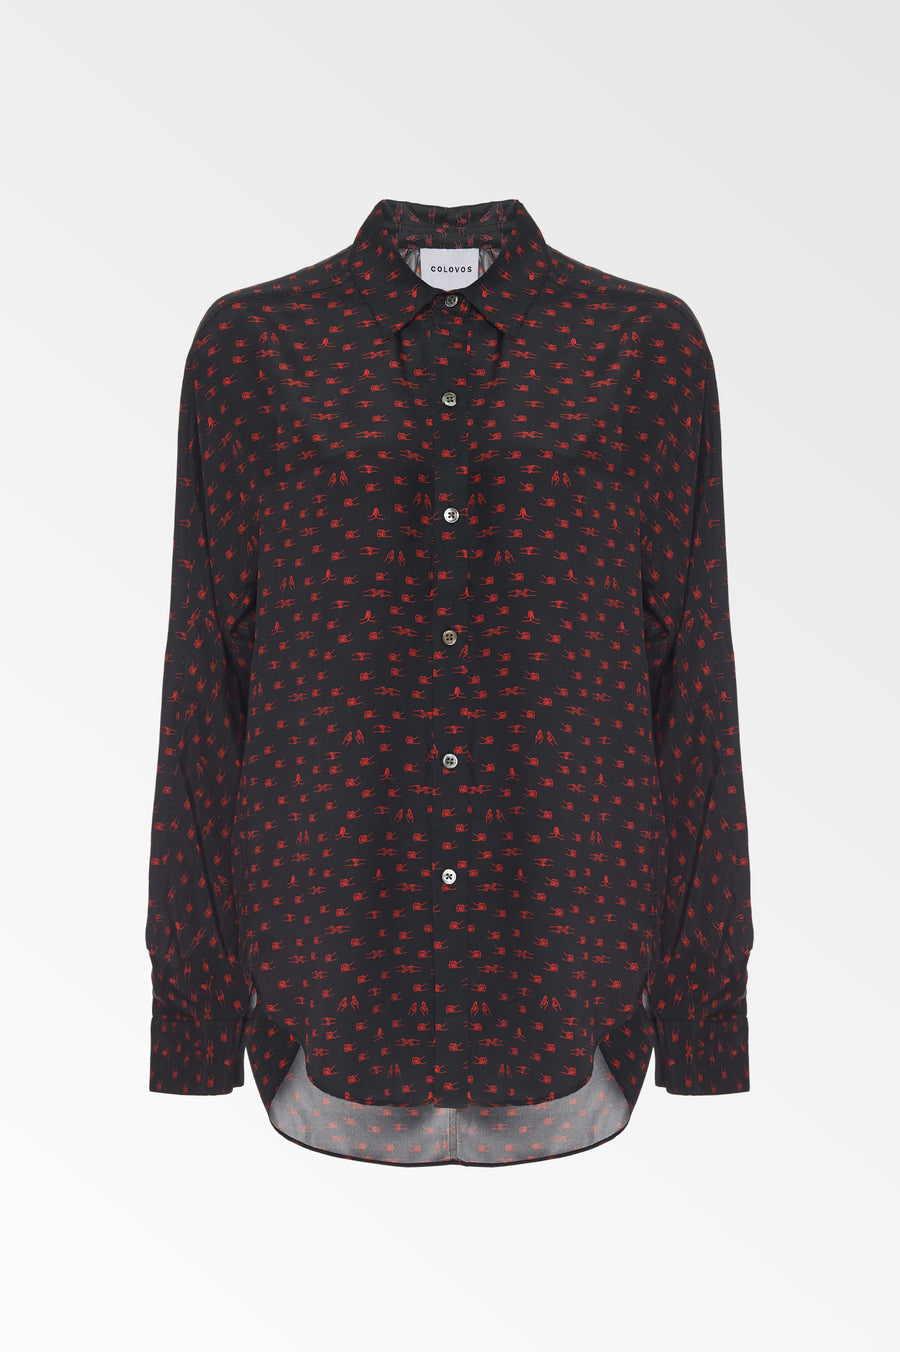 Silk Charmeuse Black and Red Holding hands print shirt- SALE